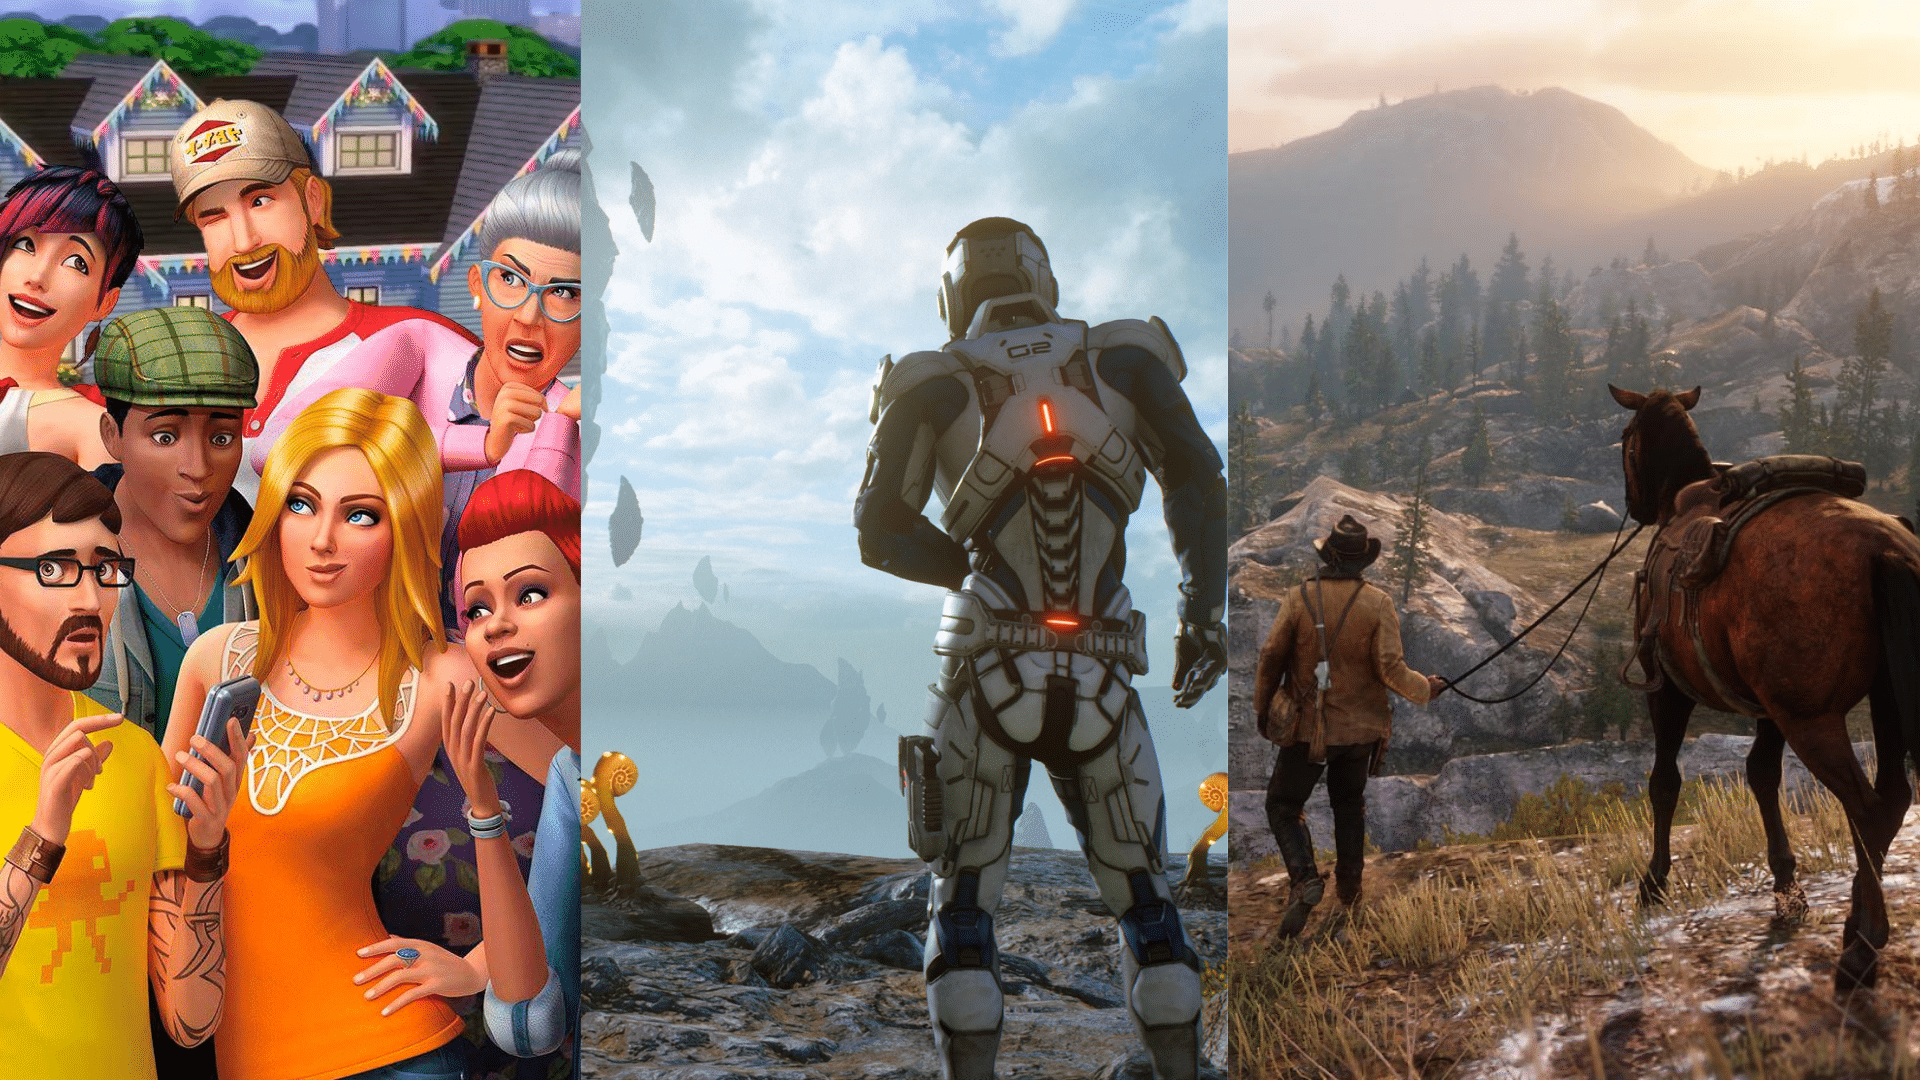 Christopher Laurence Examines: Morality & Gaming, Part 2: A Dialogue